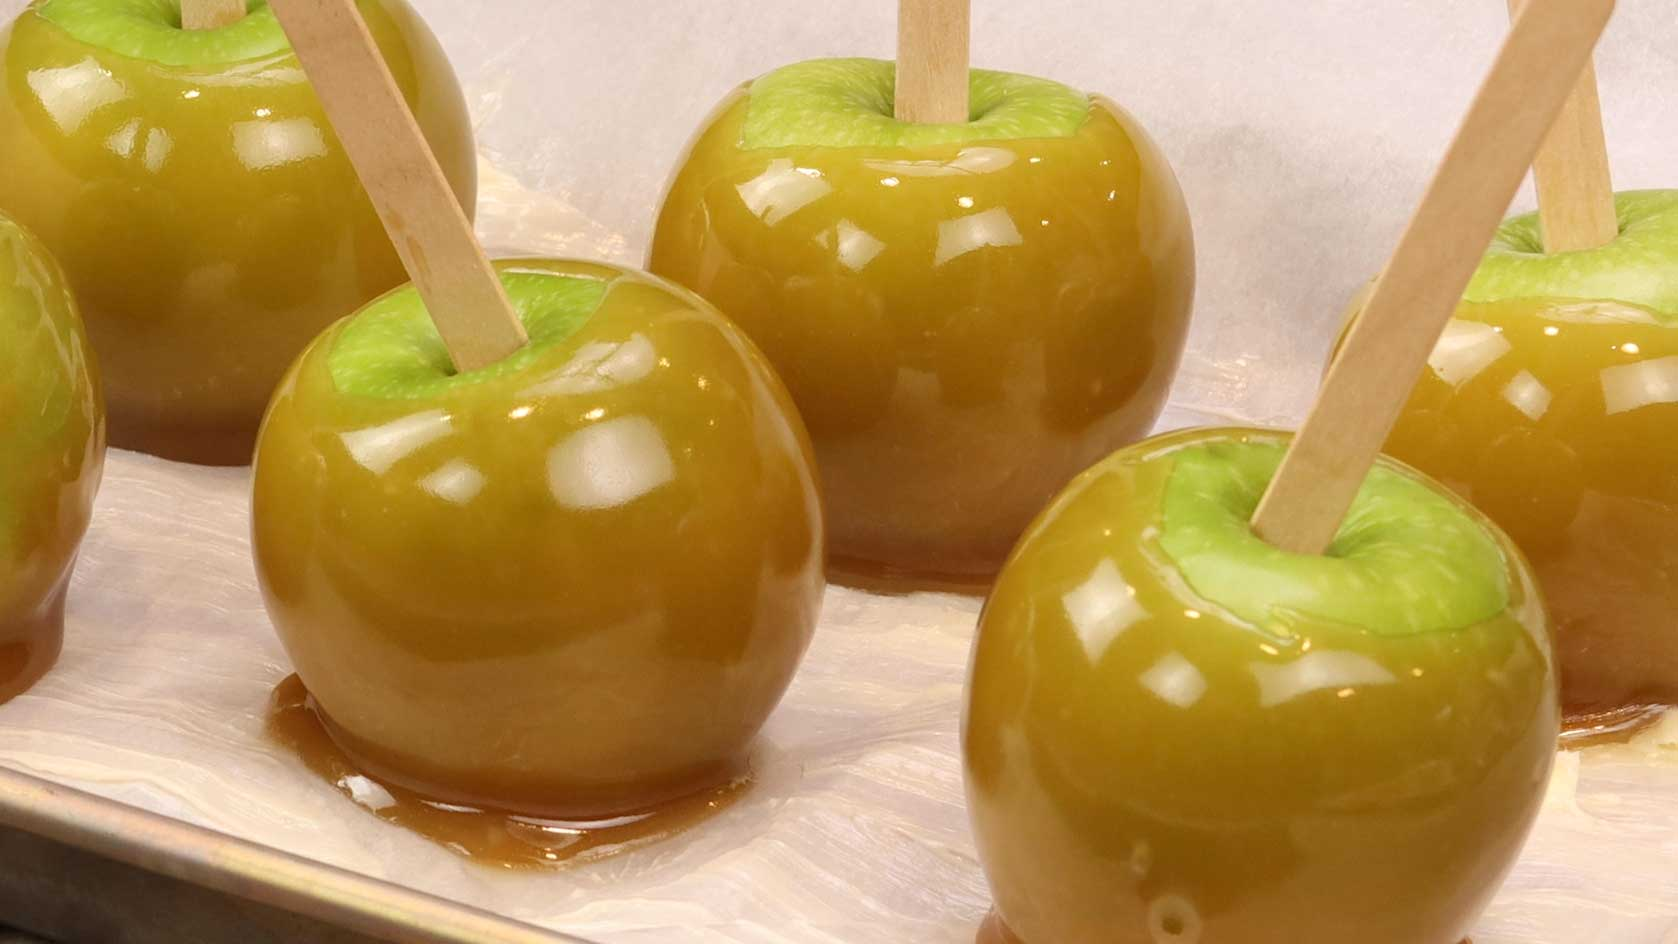 dipped apples on a tray